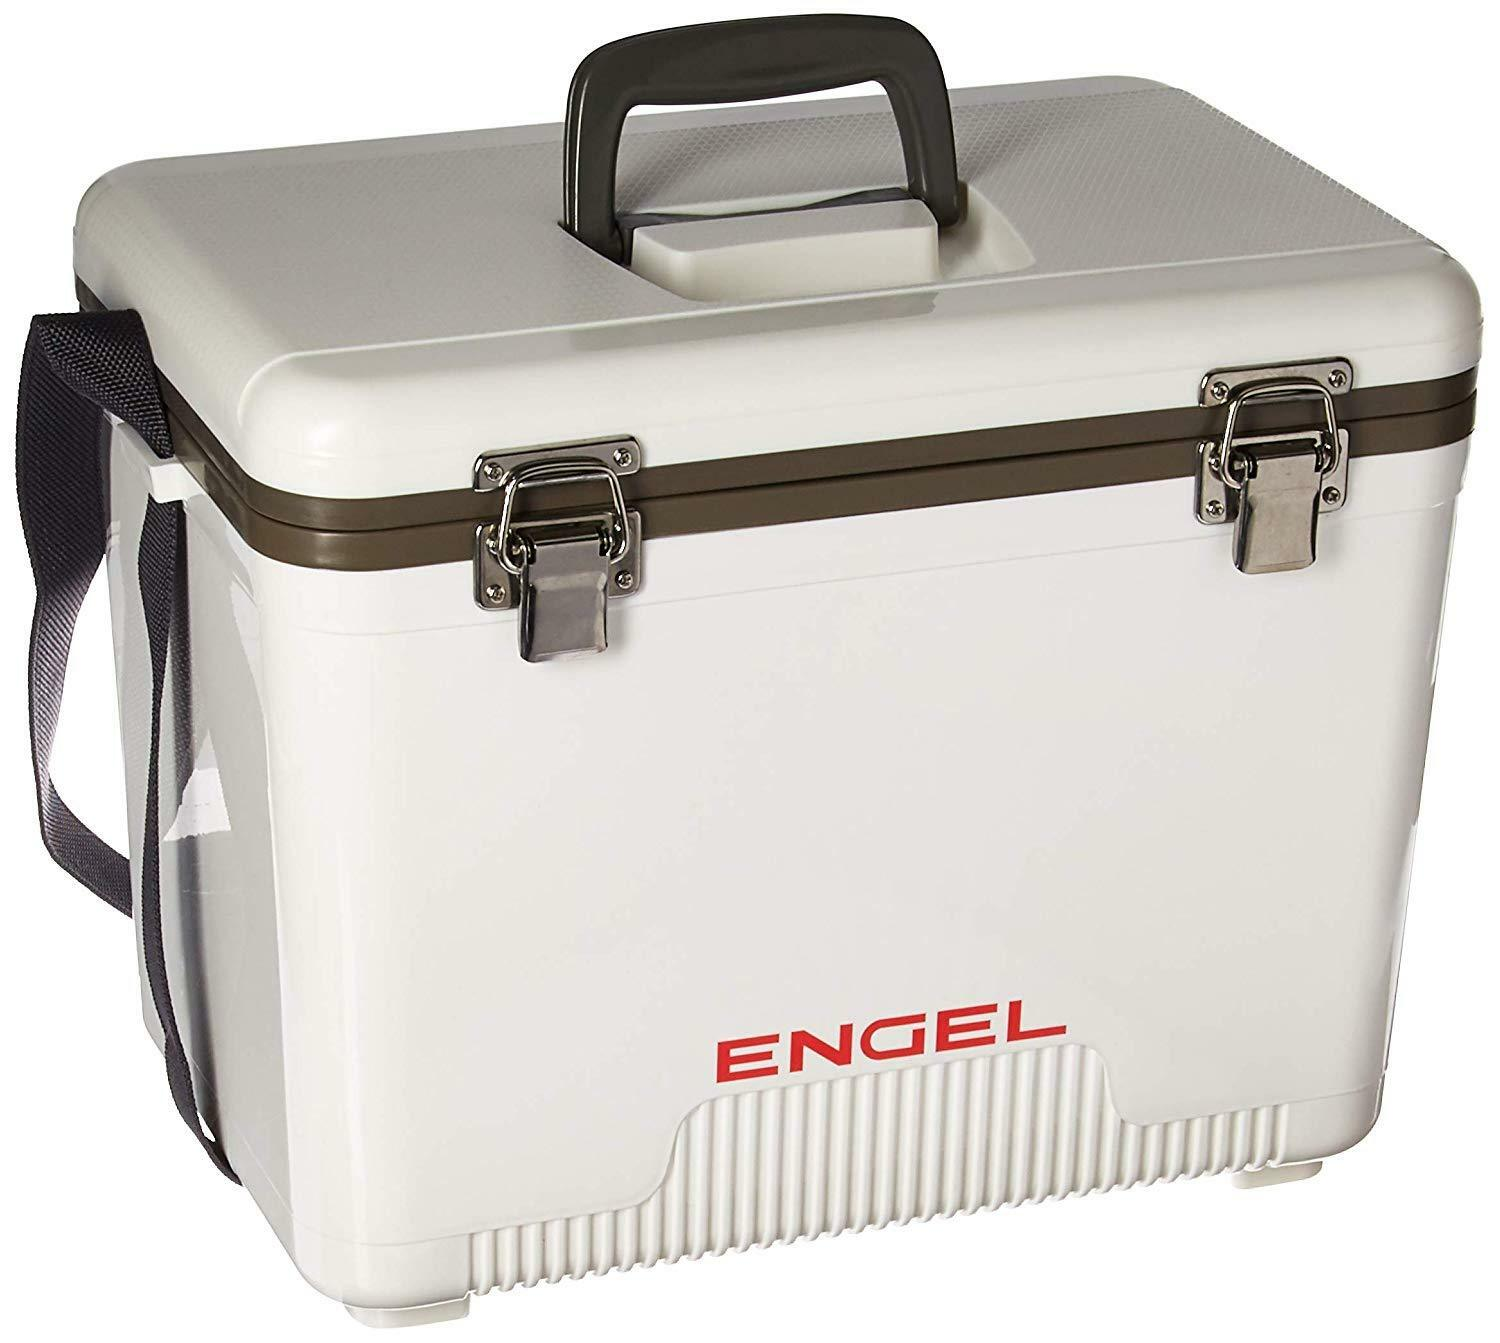 Engel Usa Cooler/Dry Box, Quart 19 Quart Box, b7d050